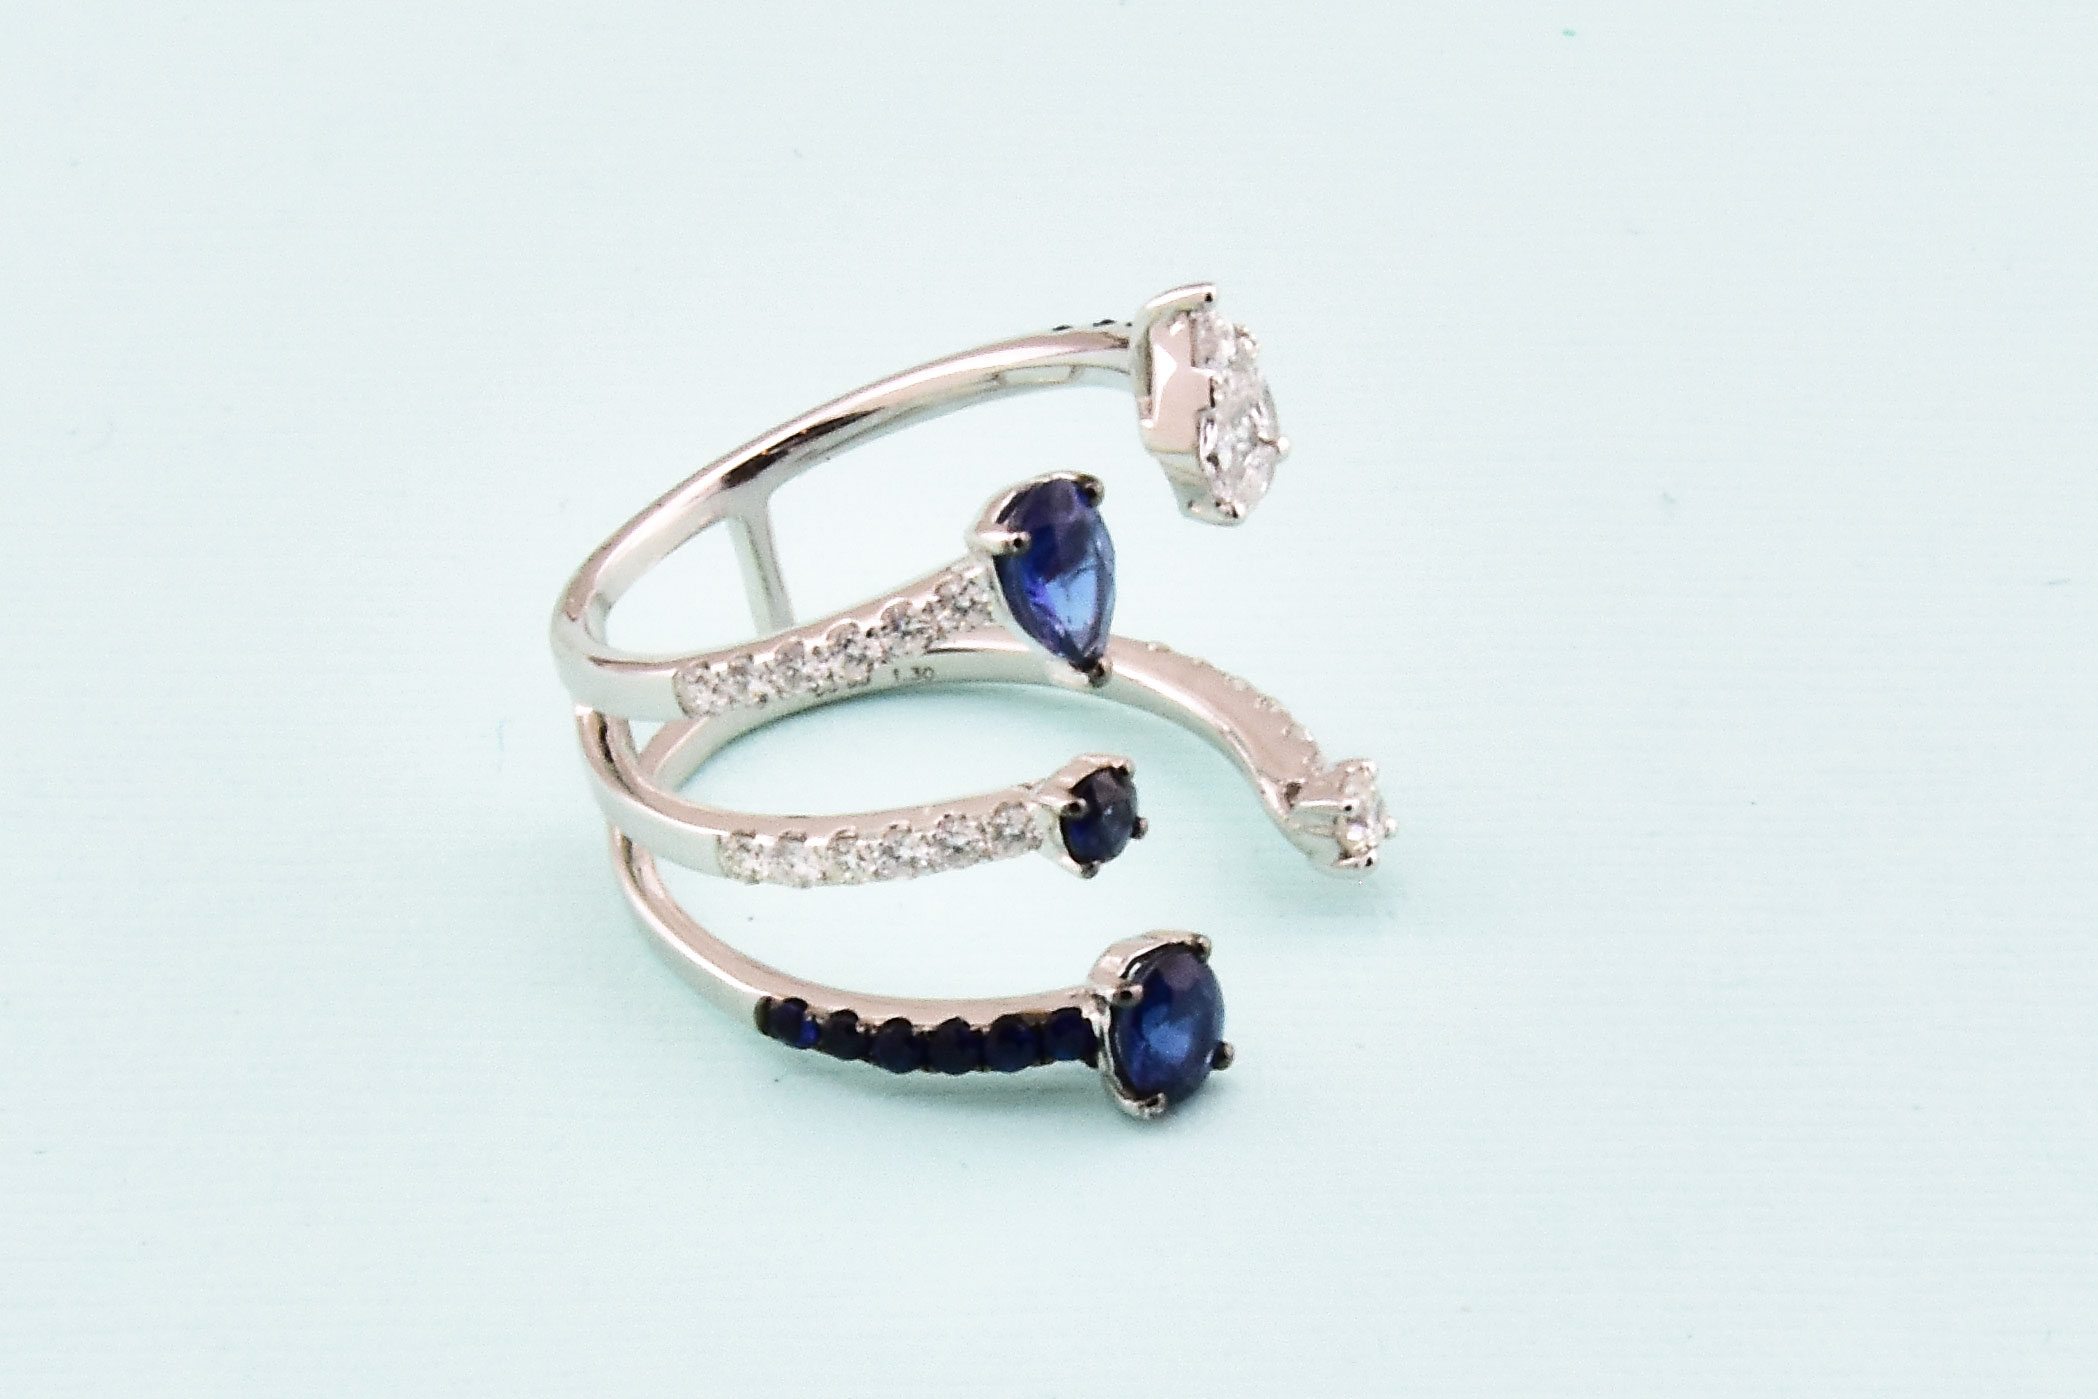 Sapphire & Diamond Open Style Cocktail Ring